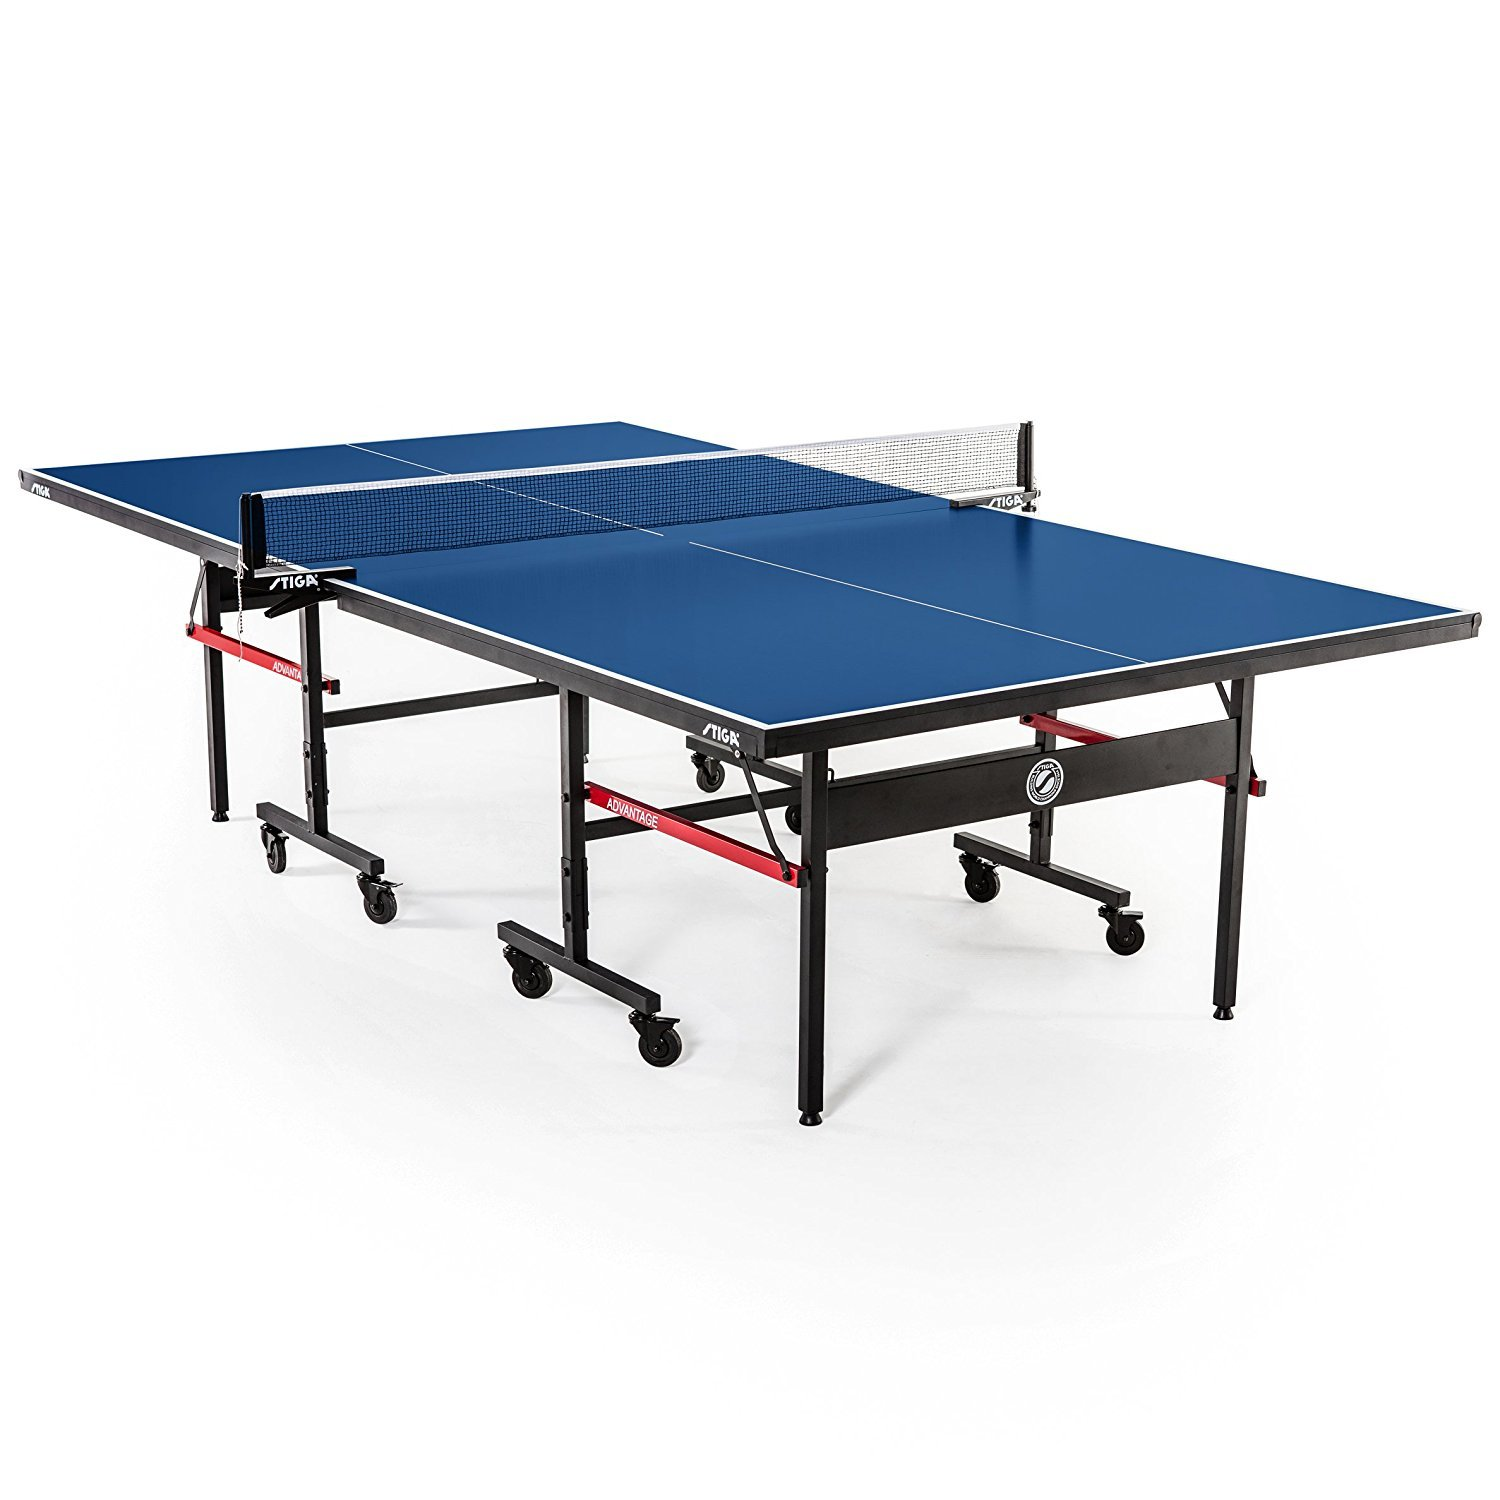 [STIGA ] [Advantage Indoor Table Tennis Table] (並行輸入品) B07F3SWZWL